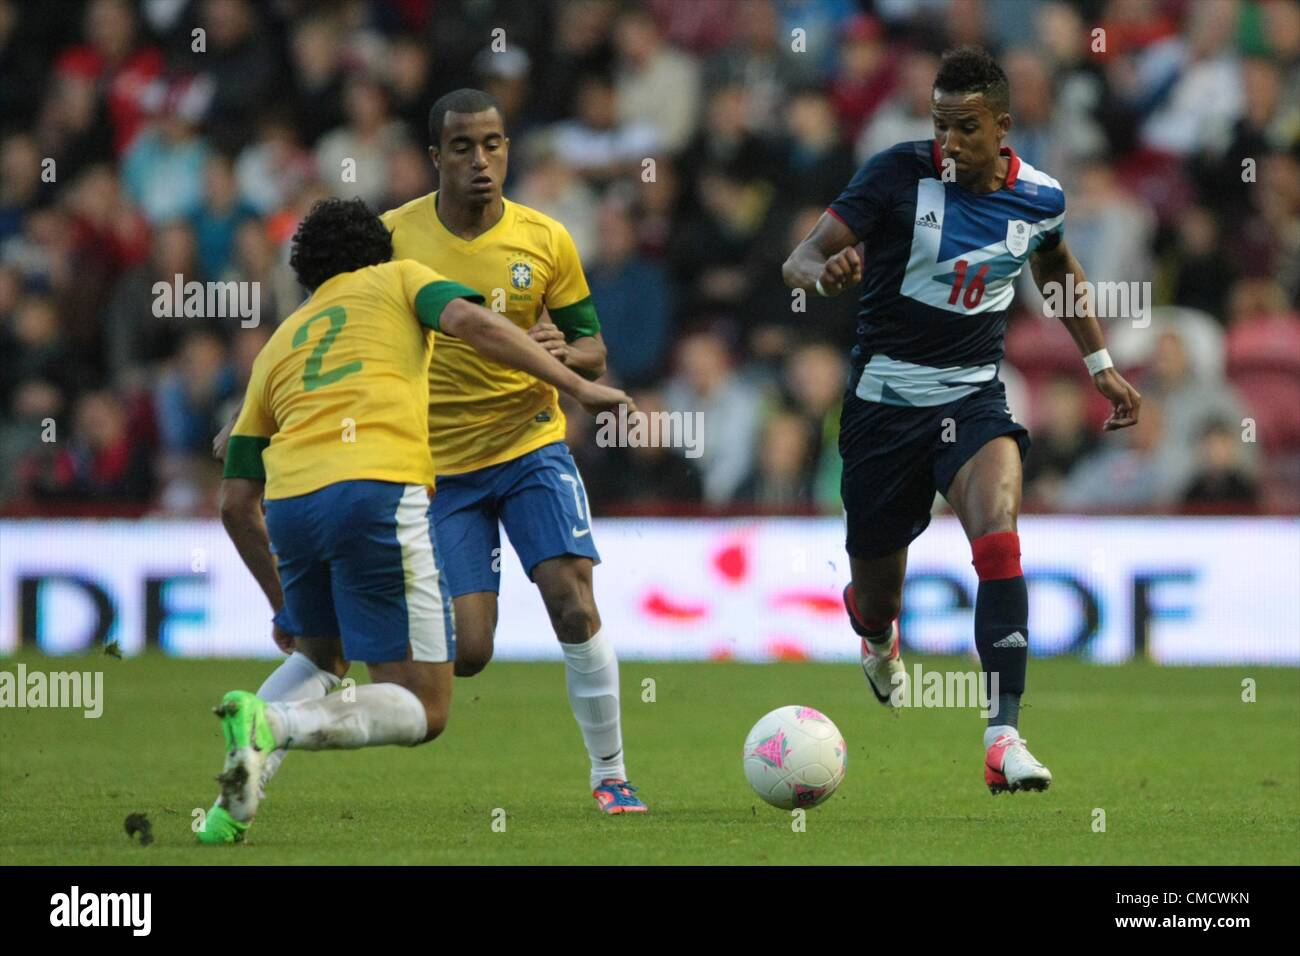 20.07.2012 Middlesbrough, England. Scott Sinclair in action during the Mens Olympic Football Warm Up Friendly between - Stock Image